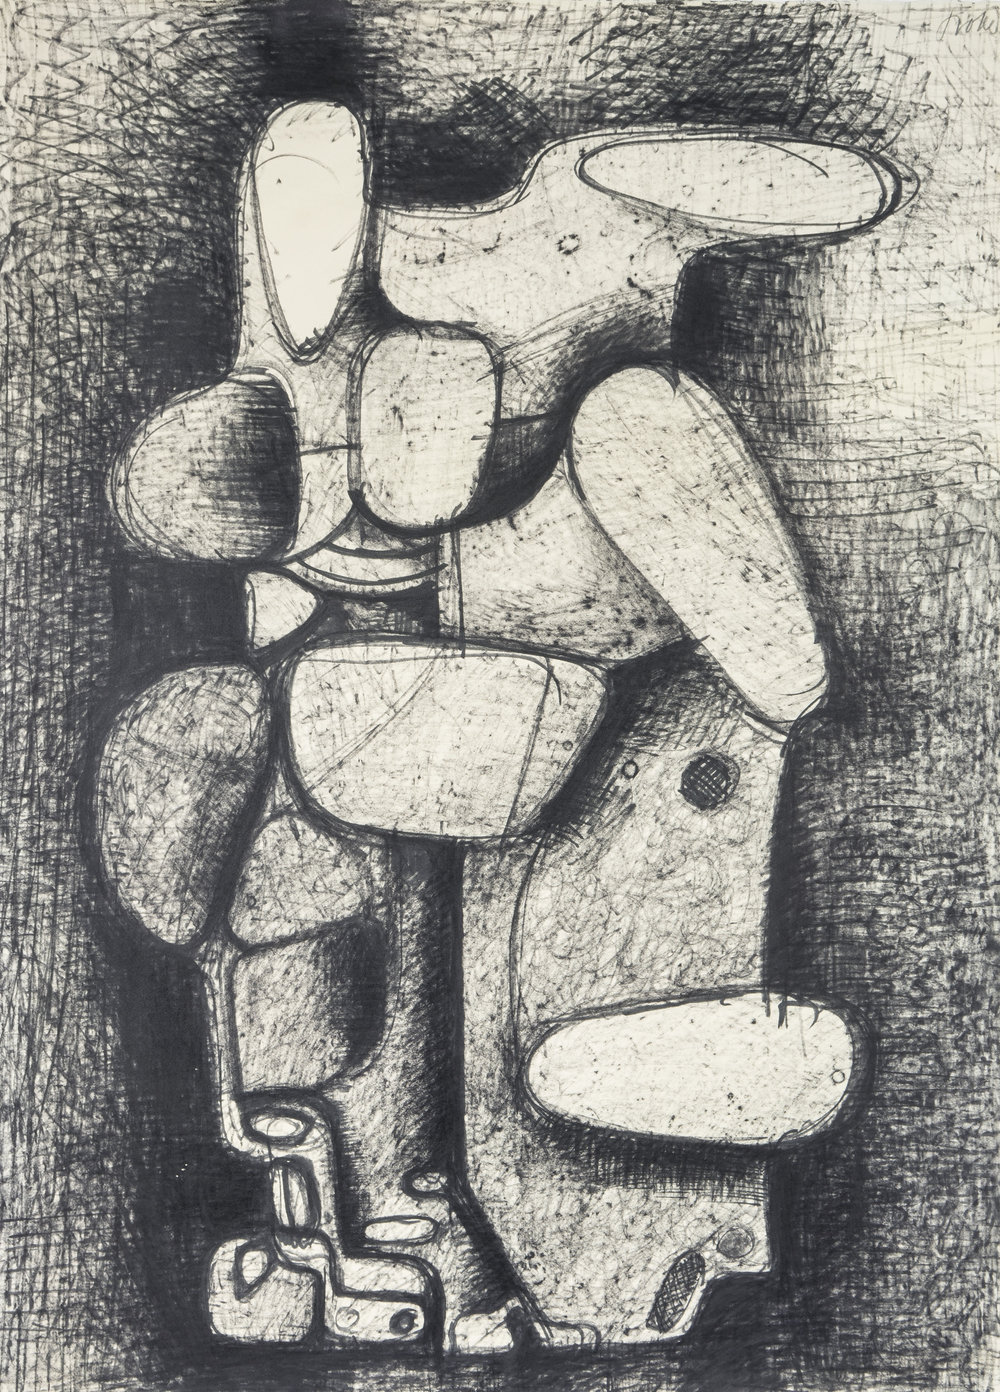 Troller-Untitled1963-205.jpg